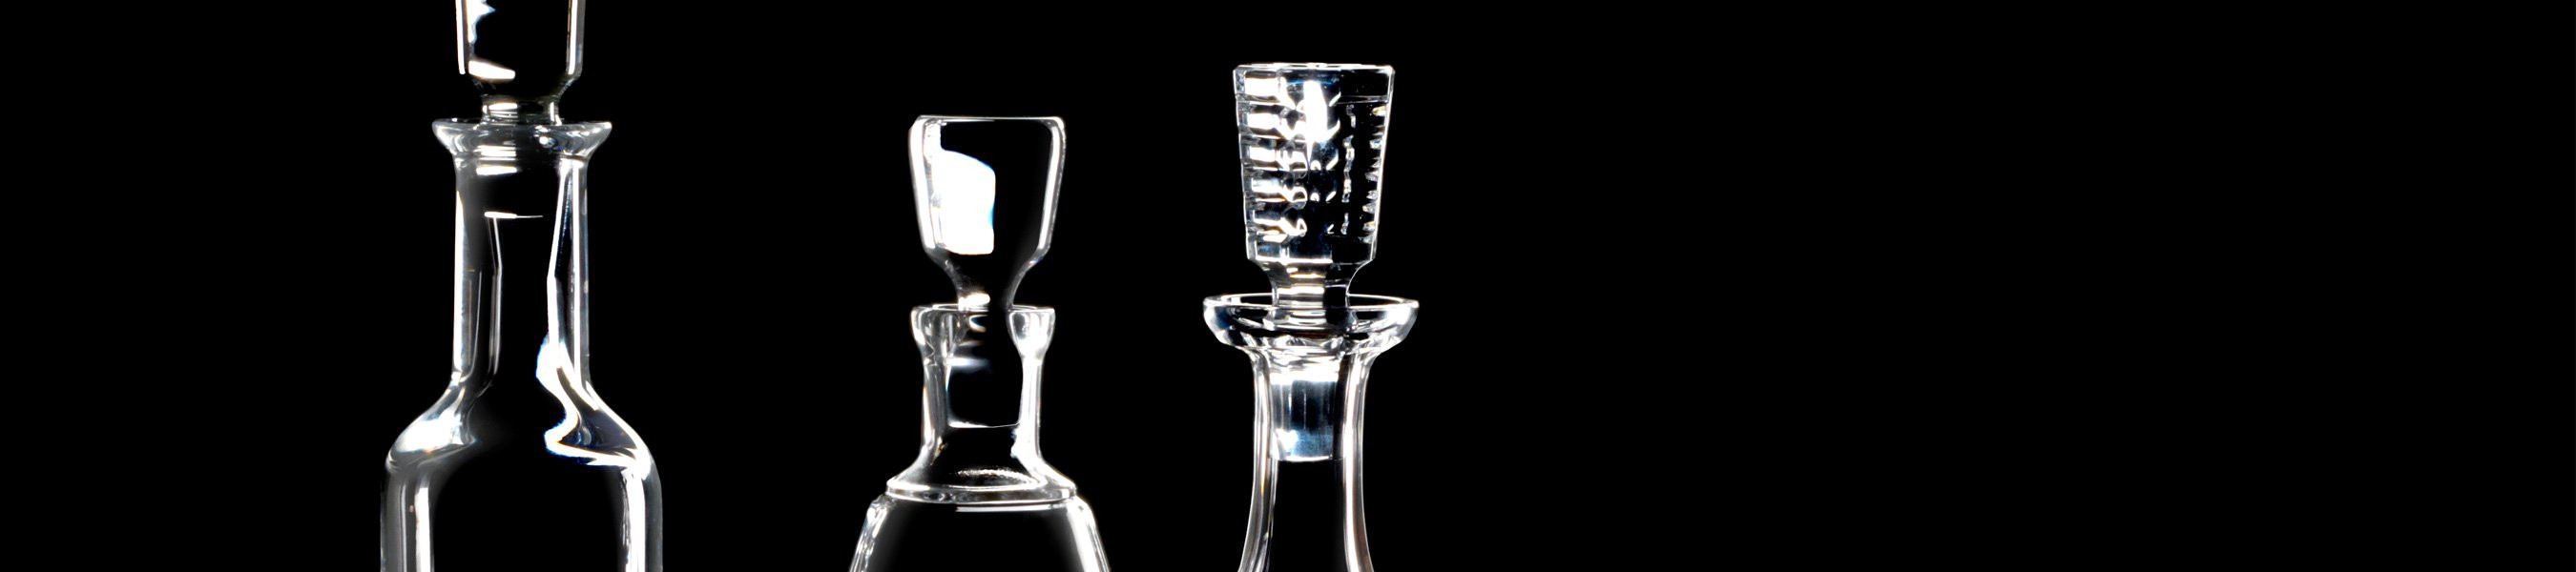 18 Unique Waterford Lismore 8 Crystal Vase